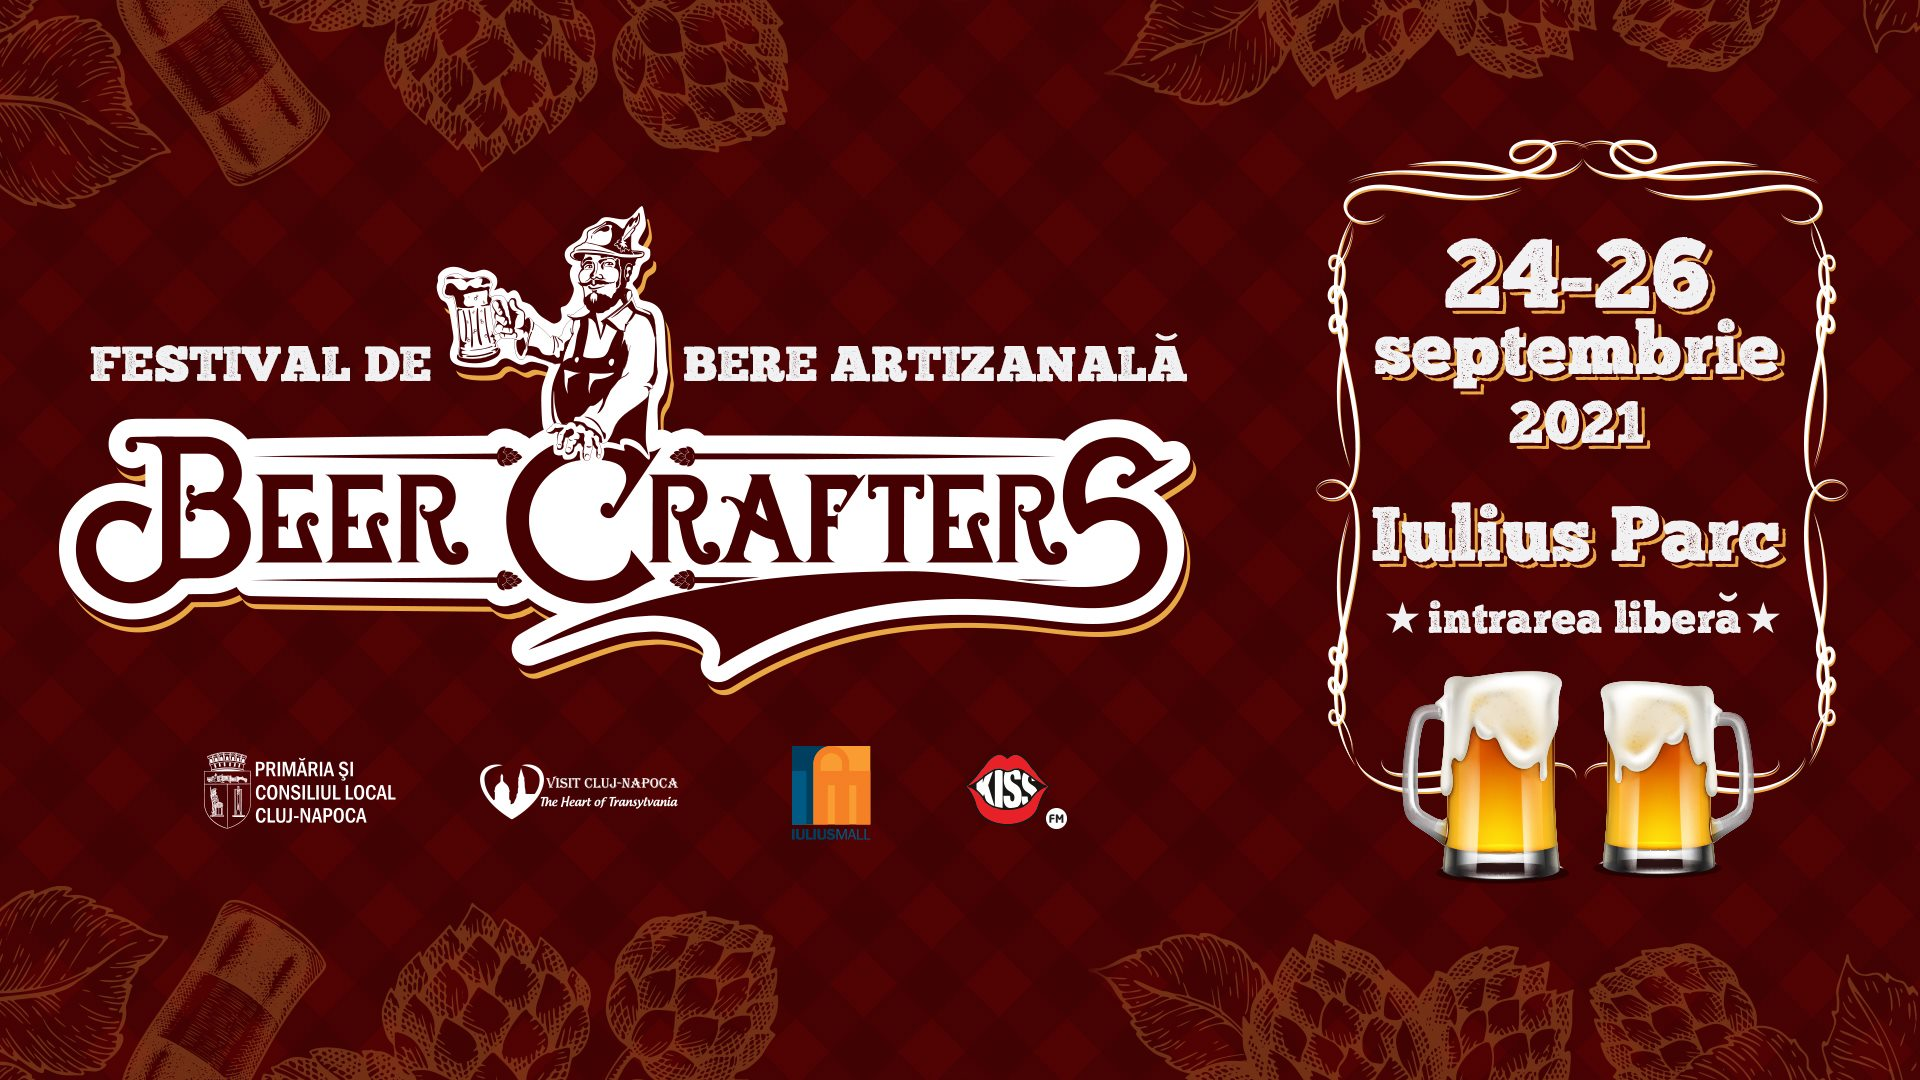 Beer Crafters Festival